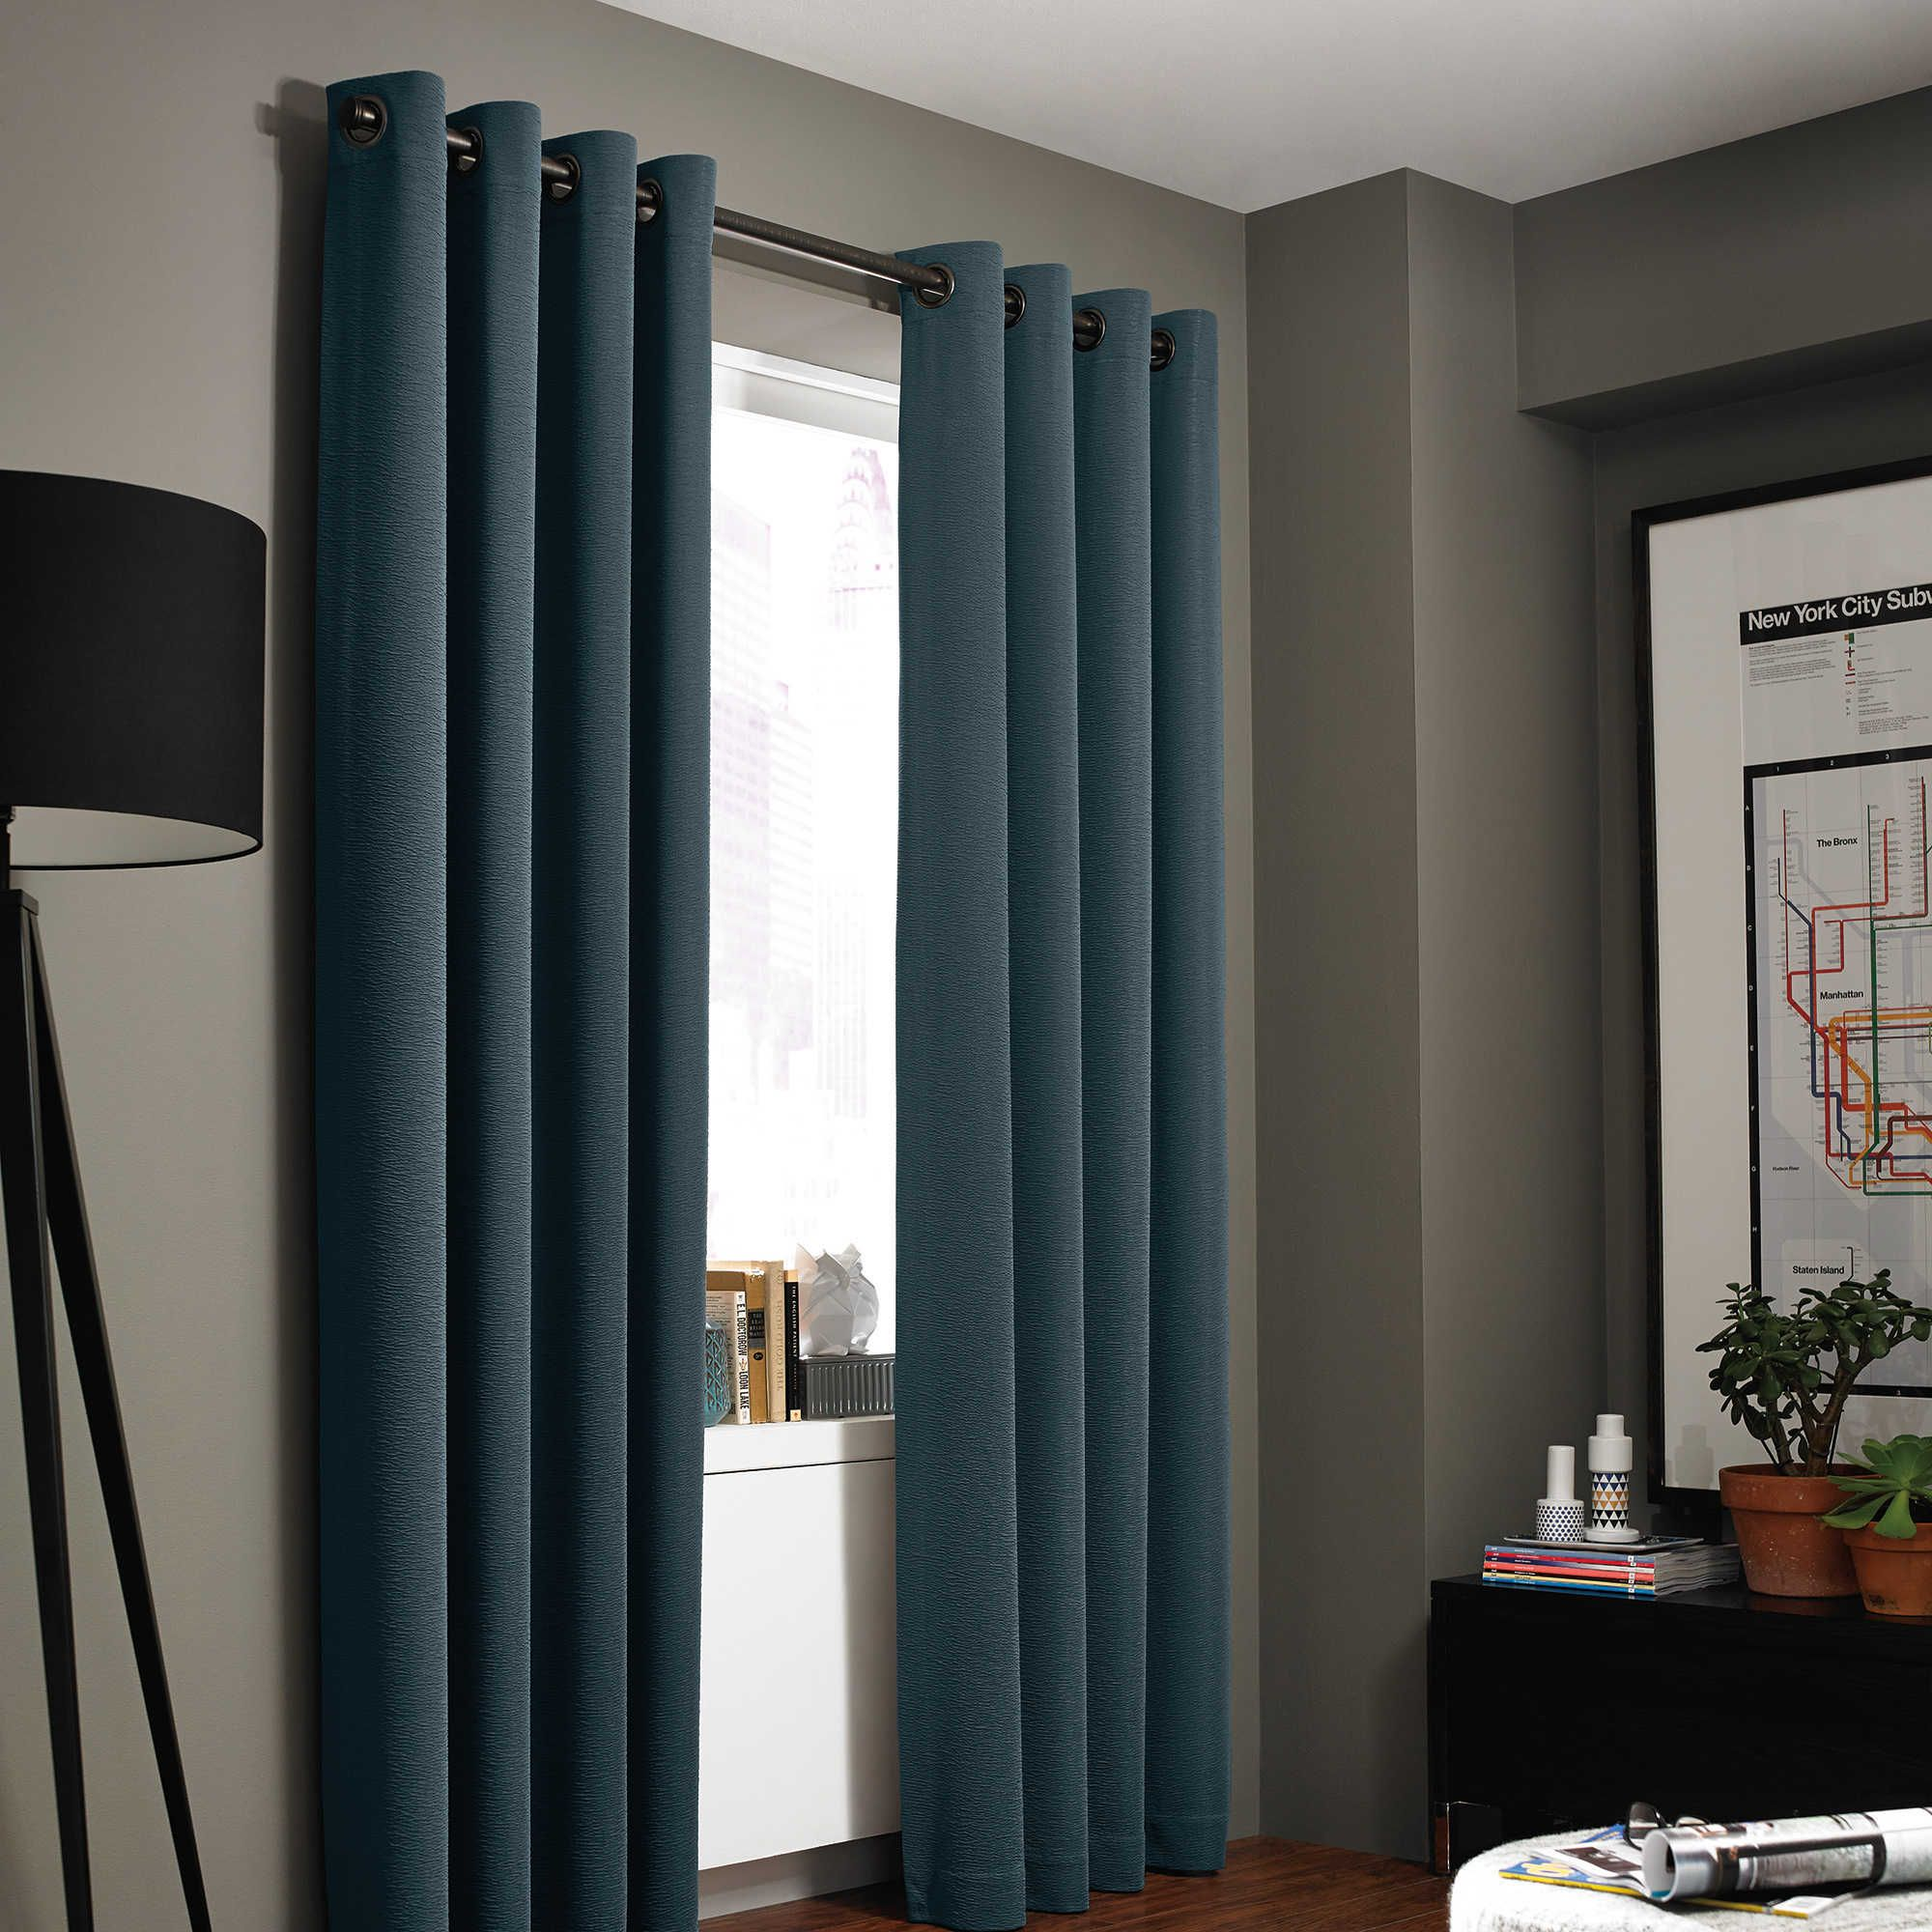 pair texture lined pencil fresh sleek jacquard quality inspirational kenneth curtains interior cole of home high new window design gotham pleat grommet reaction curtain the